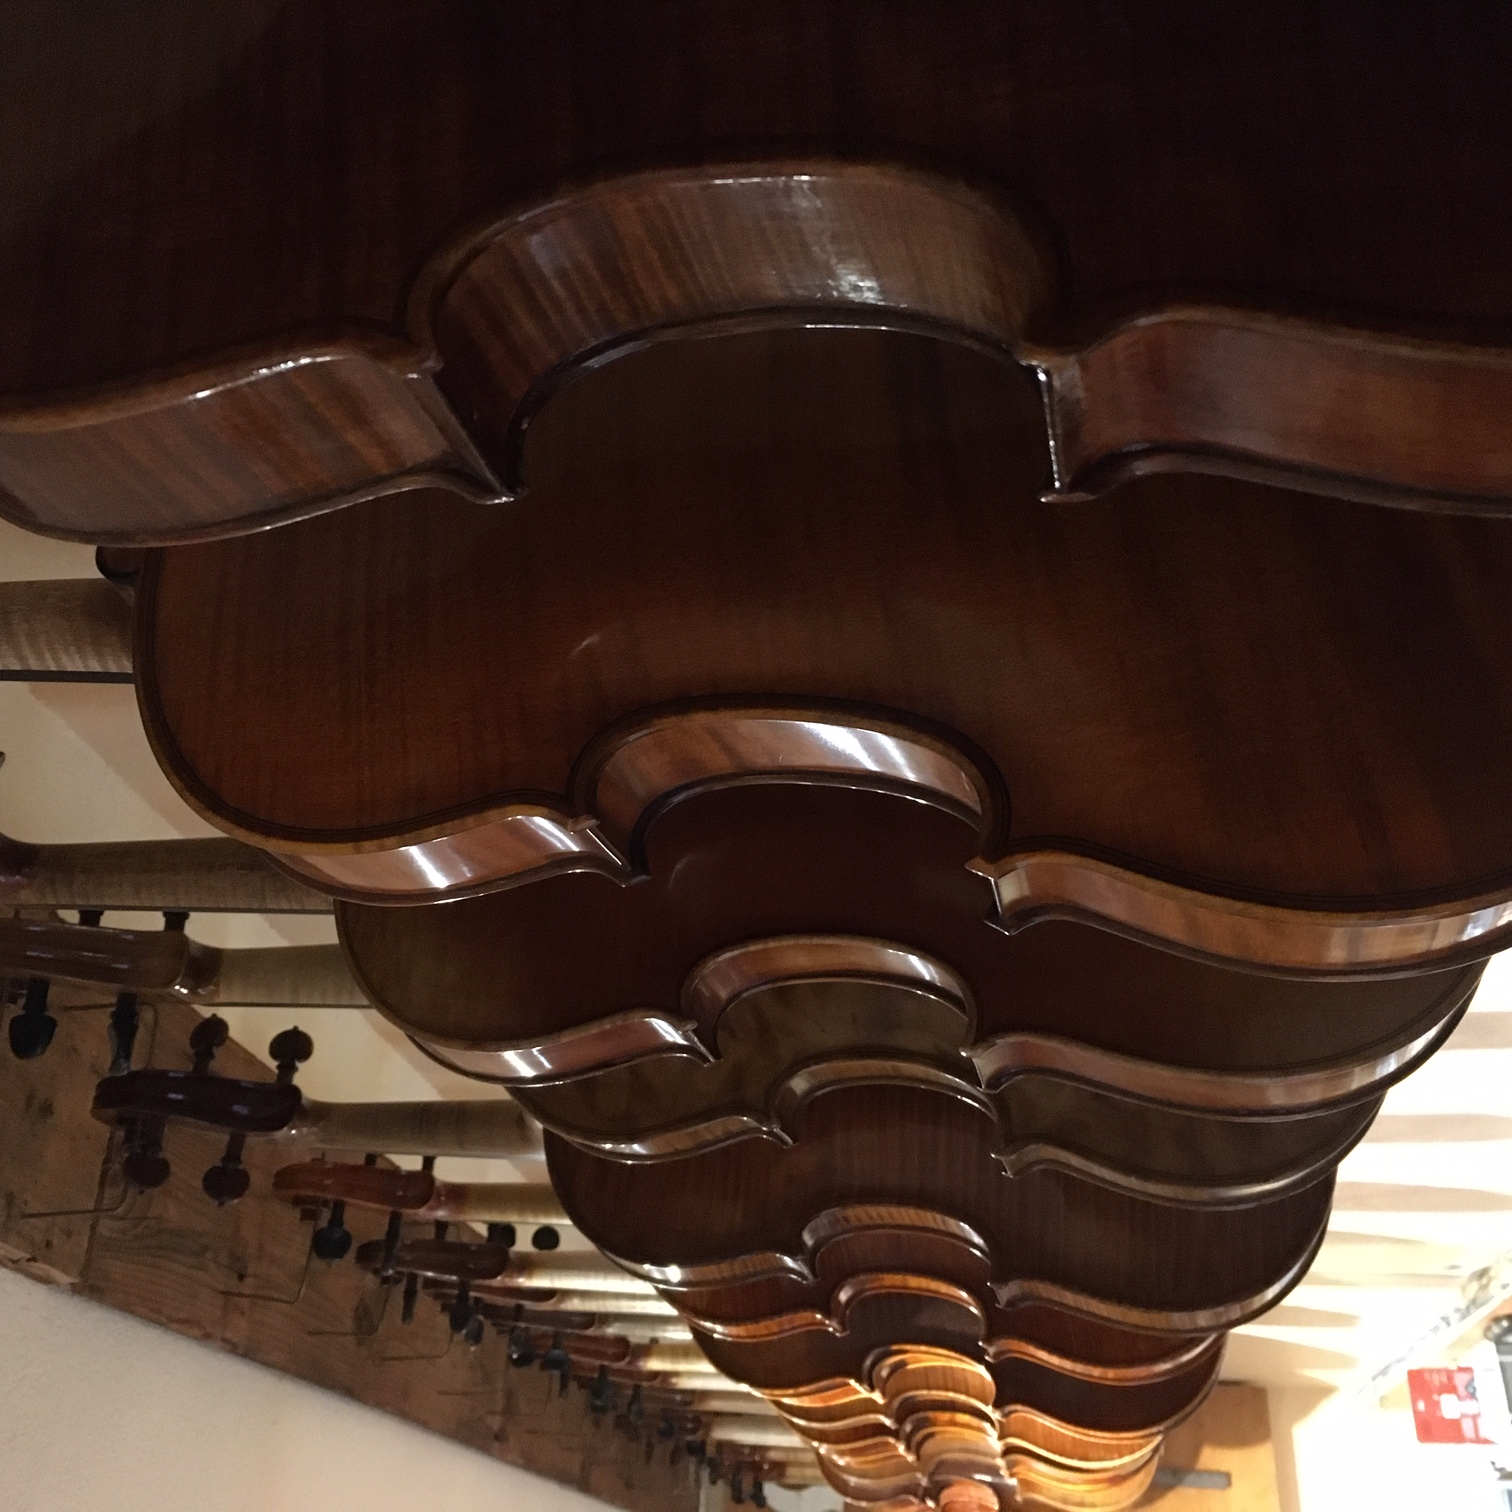 Restored violins hanging.